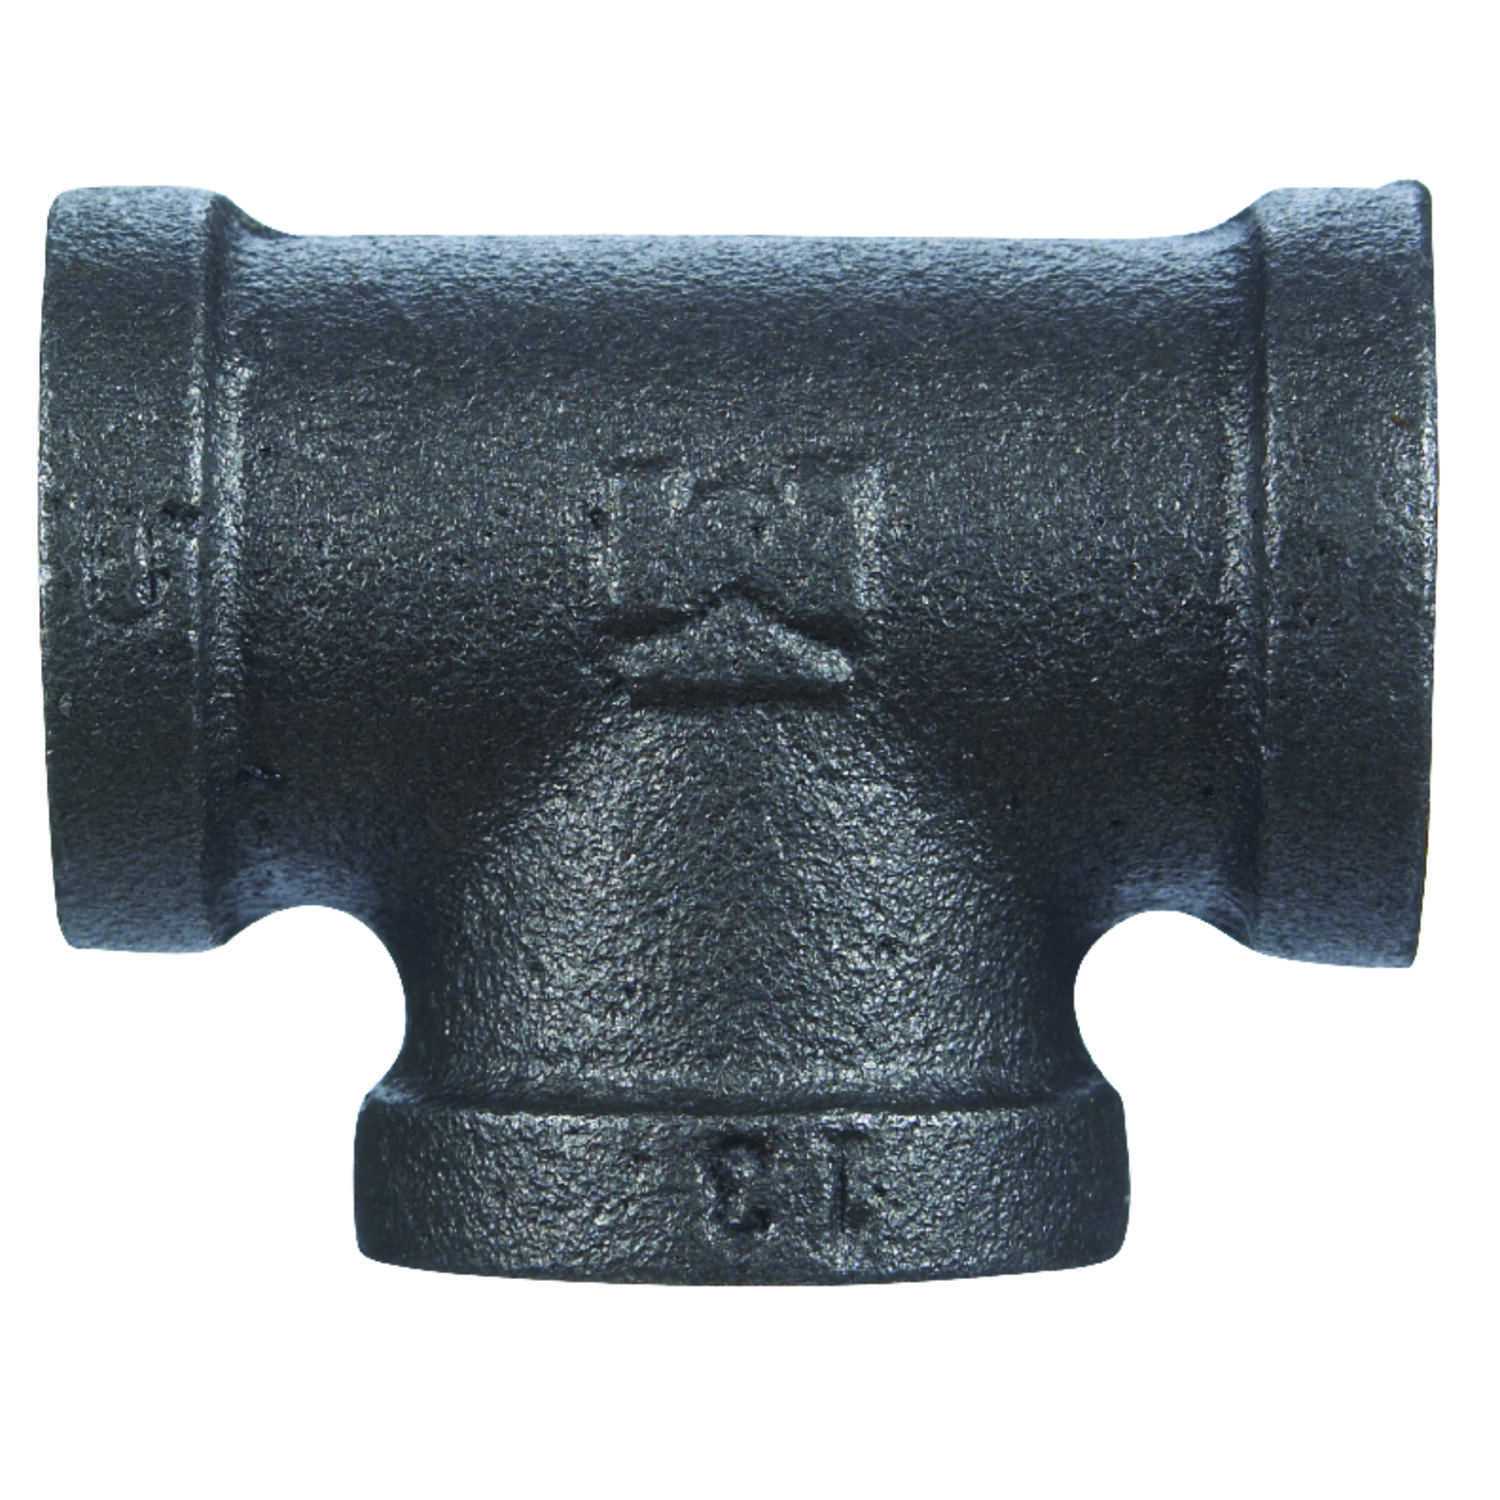 B & K  3/4 in. FPT   x 3/4 in. Dia. FPT  Black  Malleable Iron  Tee